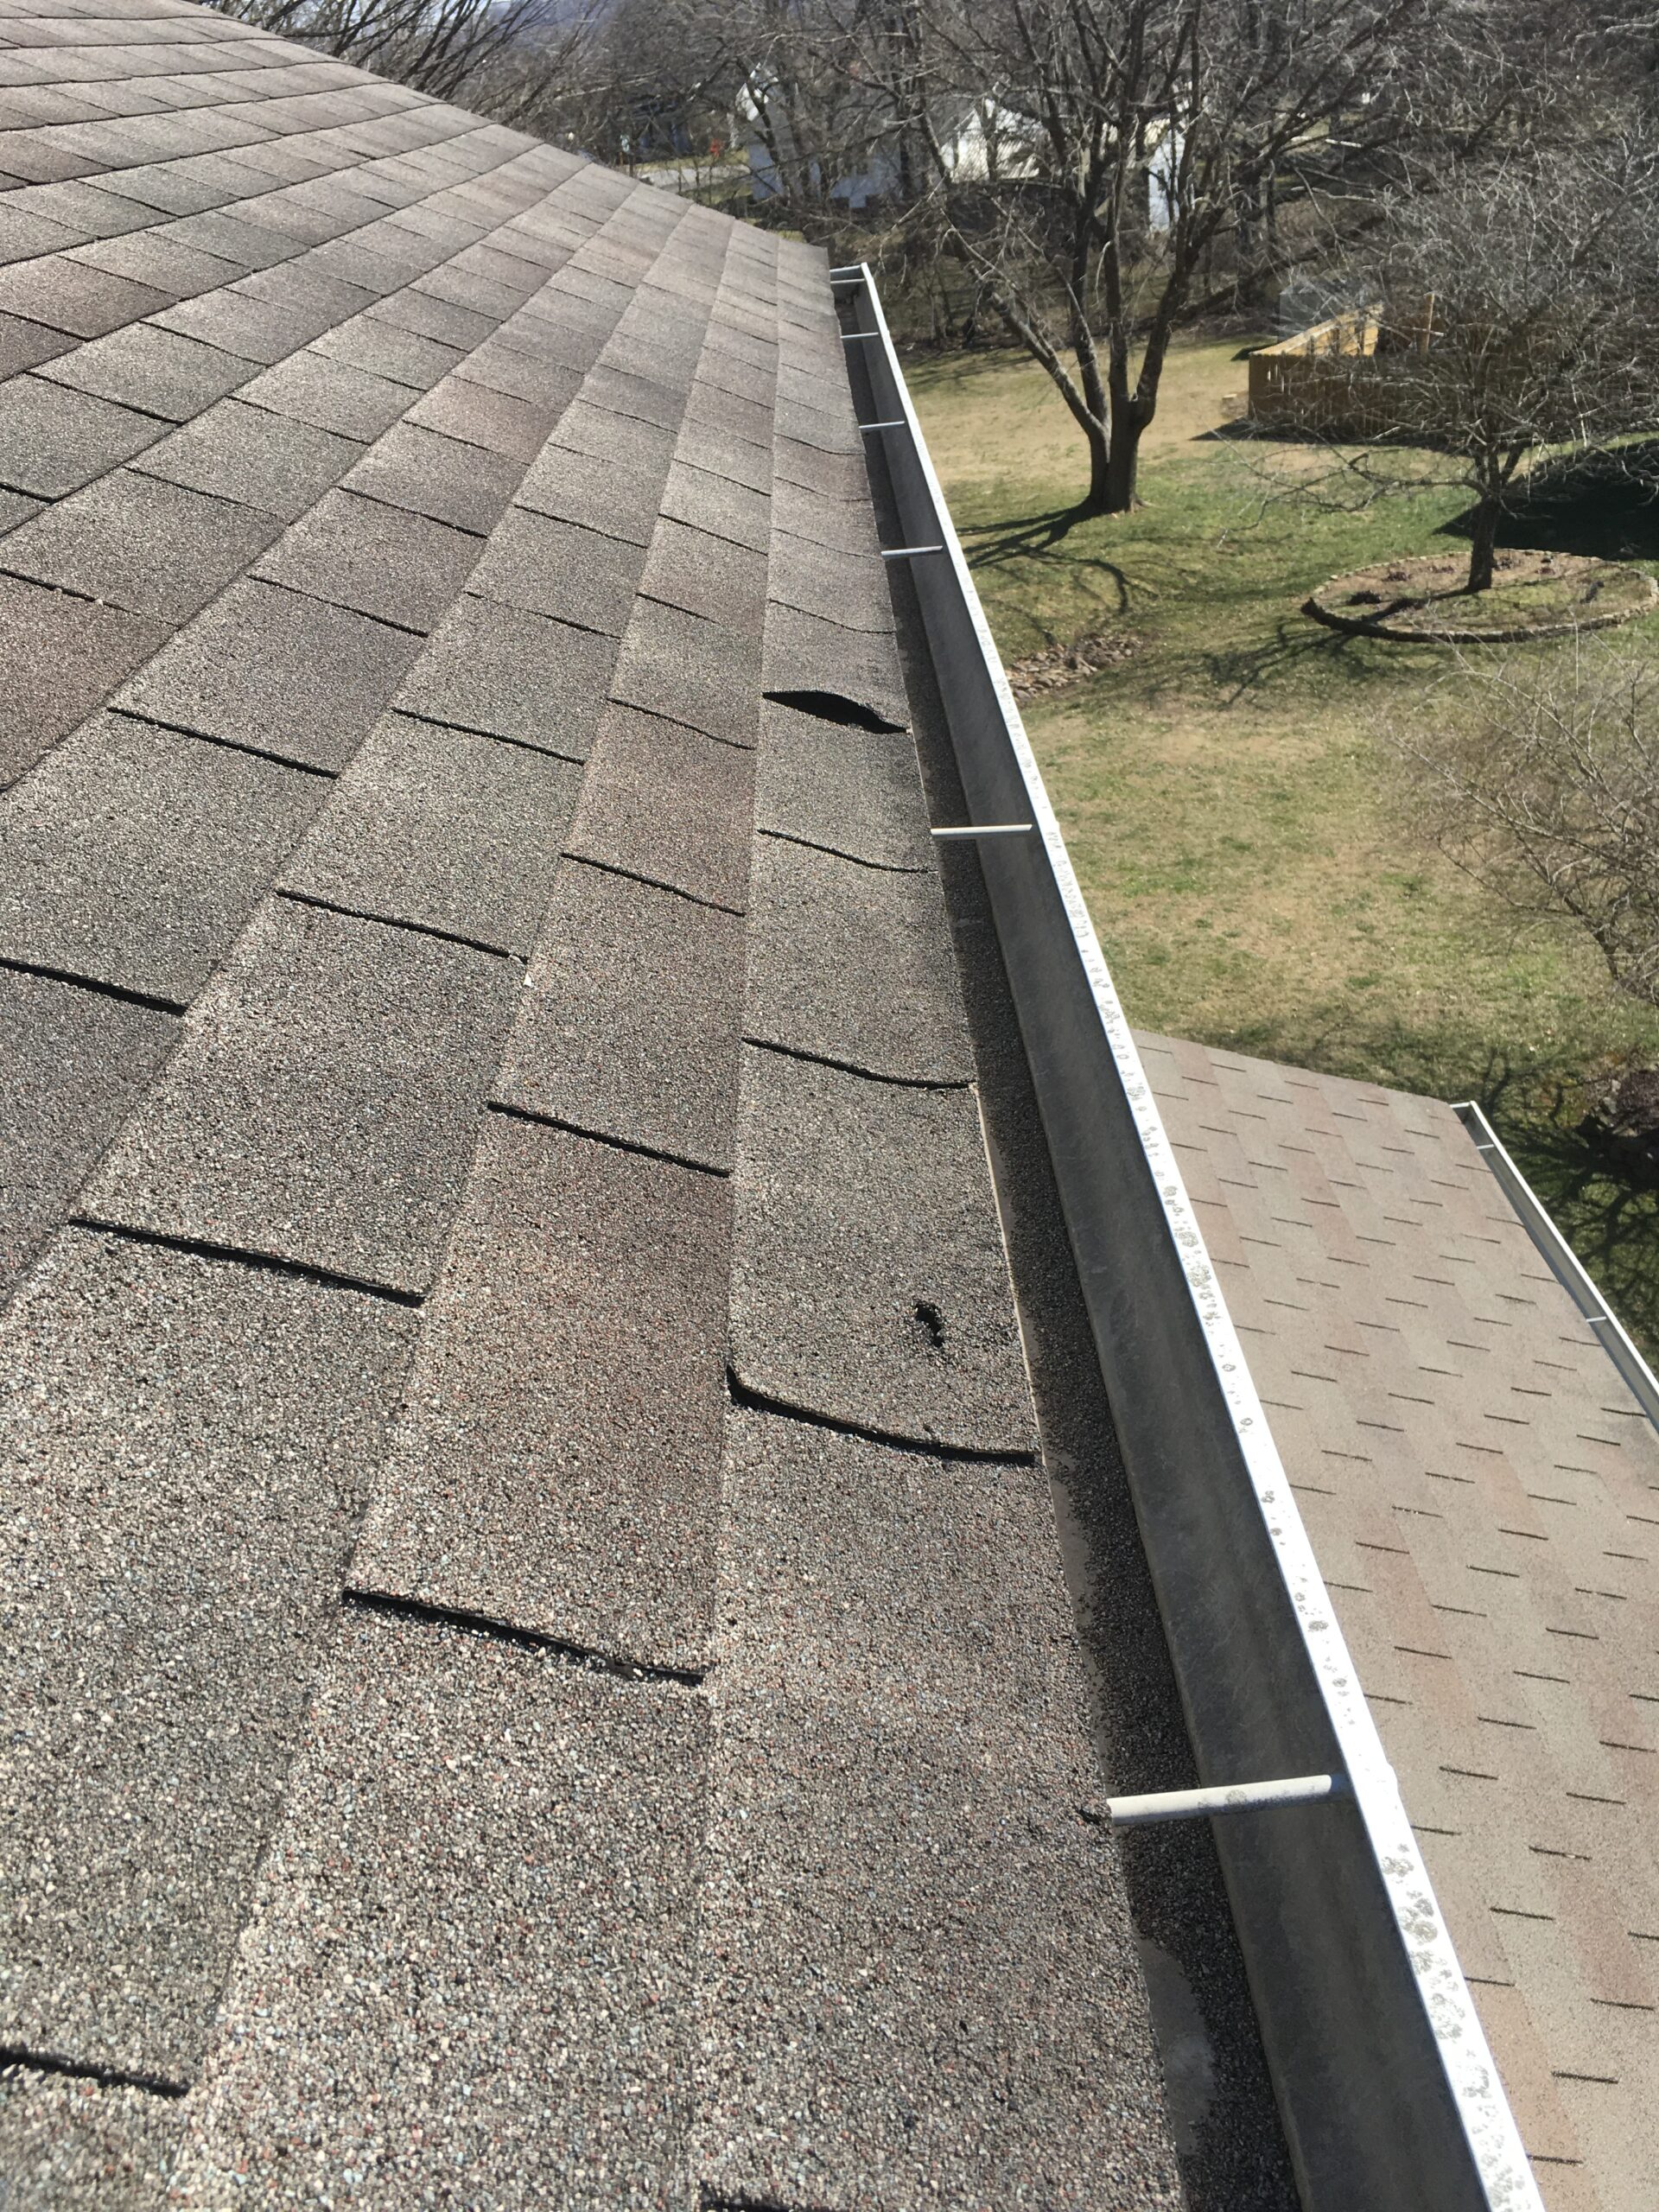 These shingles are beginning to have problems on the edge of this roof